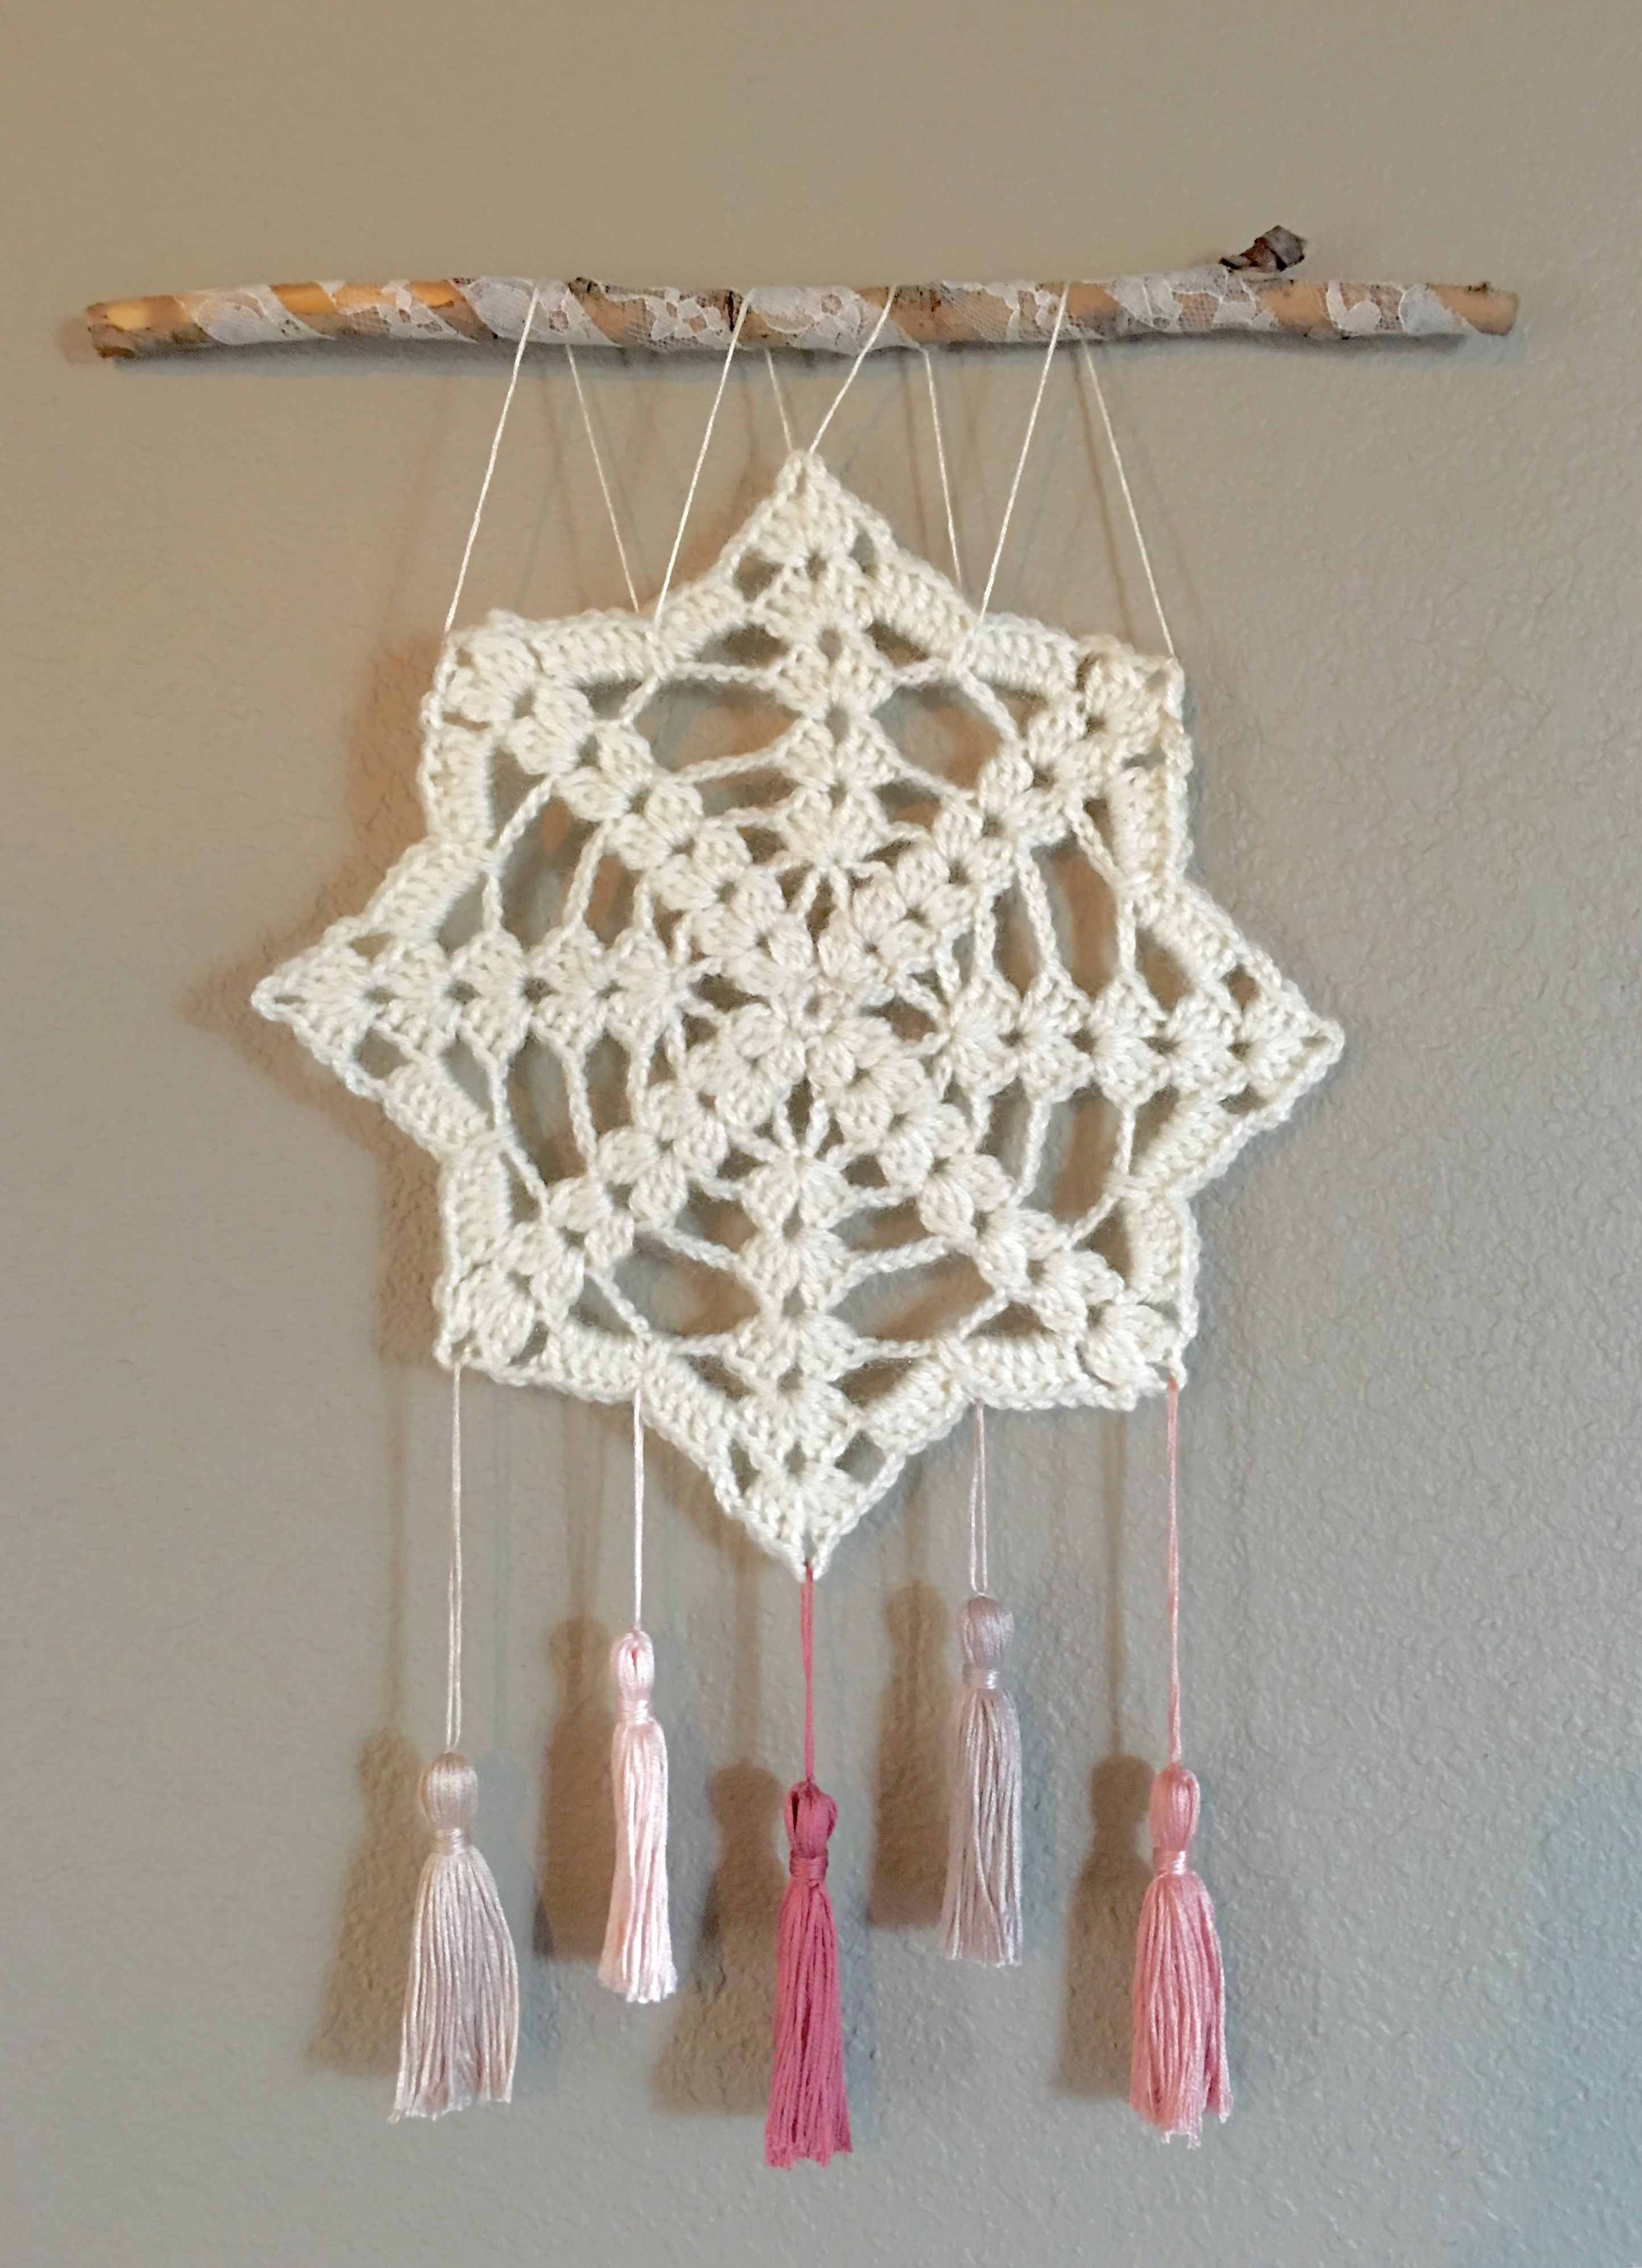 Crochet Wall Hanging, Wall Decor, Doily Art, Shabby Chic Wall Art Intended For Current Crochet Wall Art (View 9 of 20)